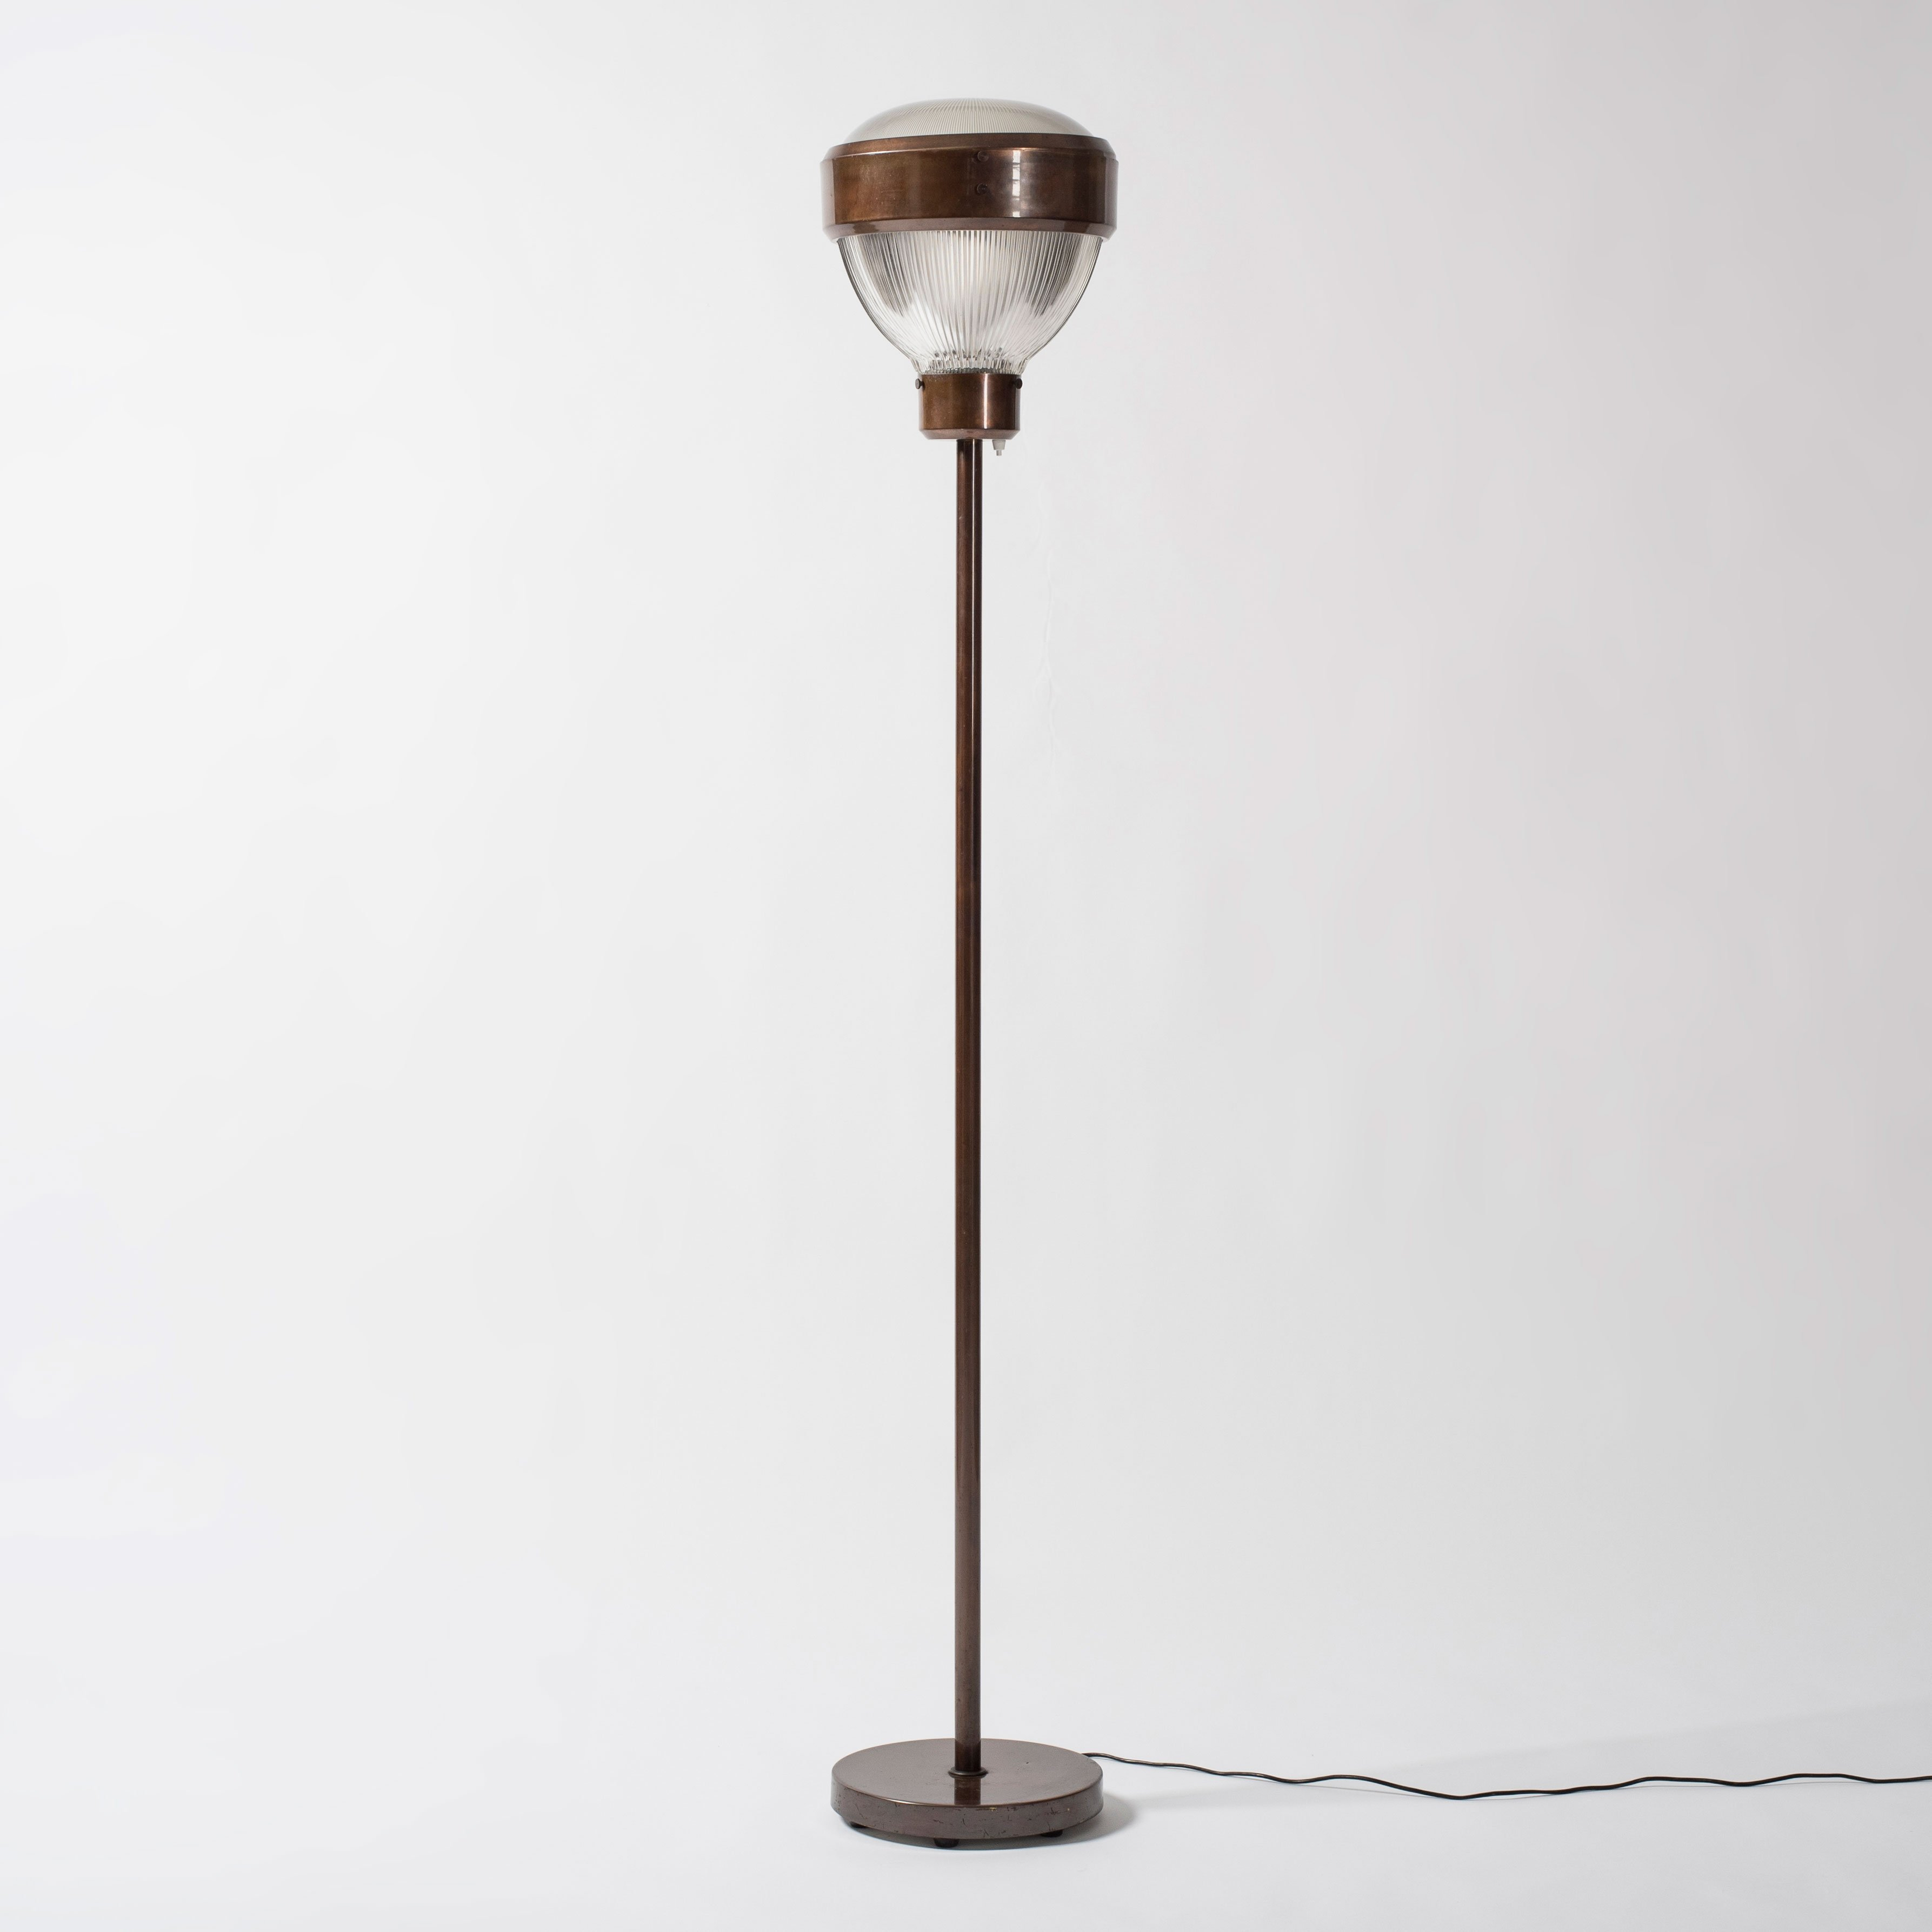 Studio BBPR |                                  Floor Lamp